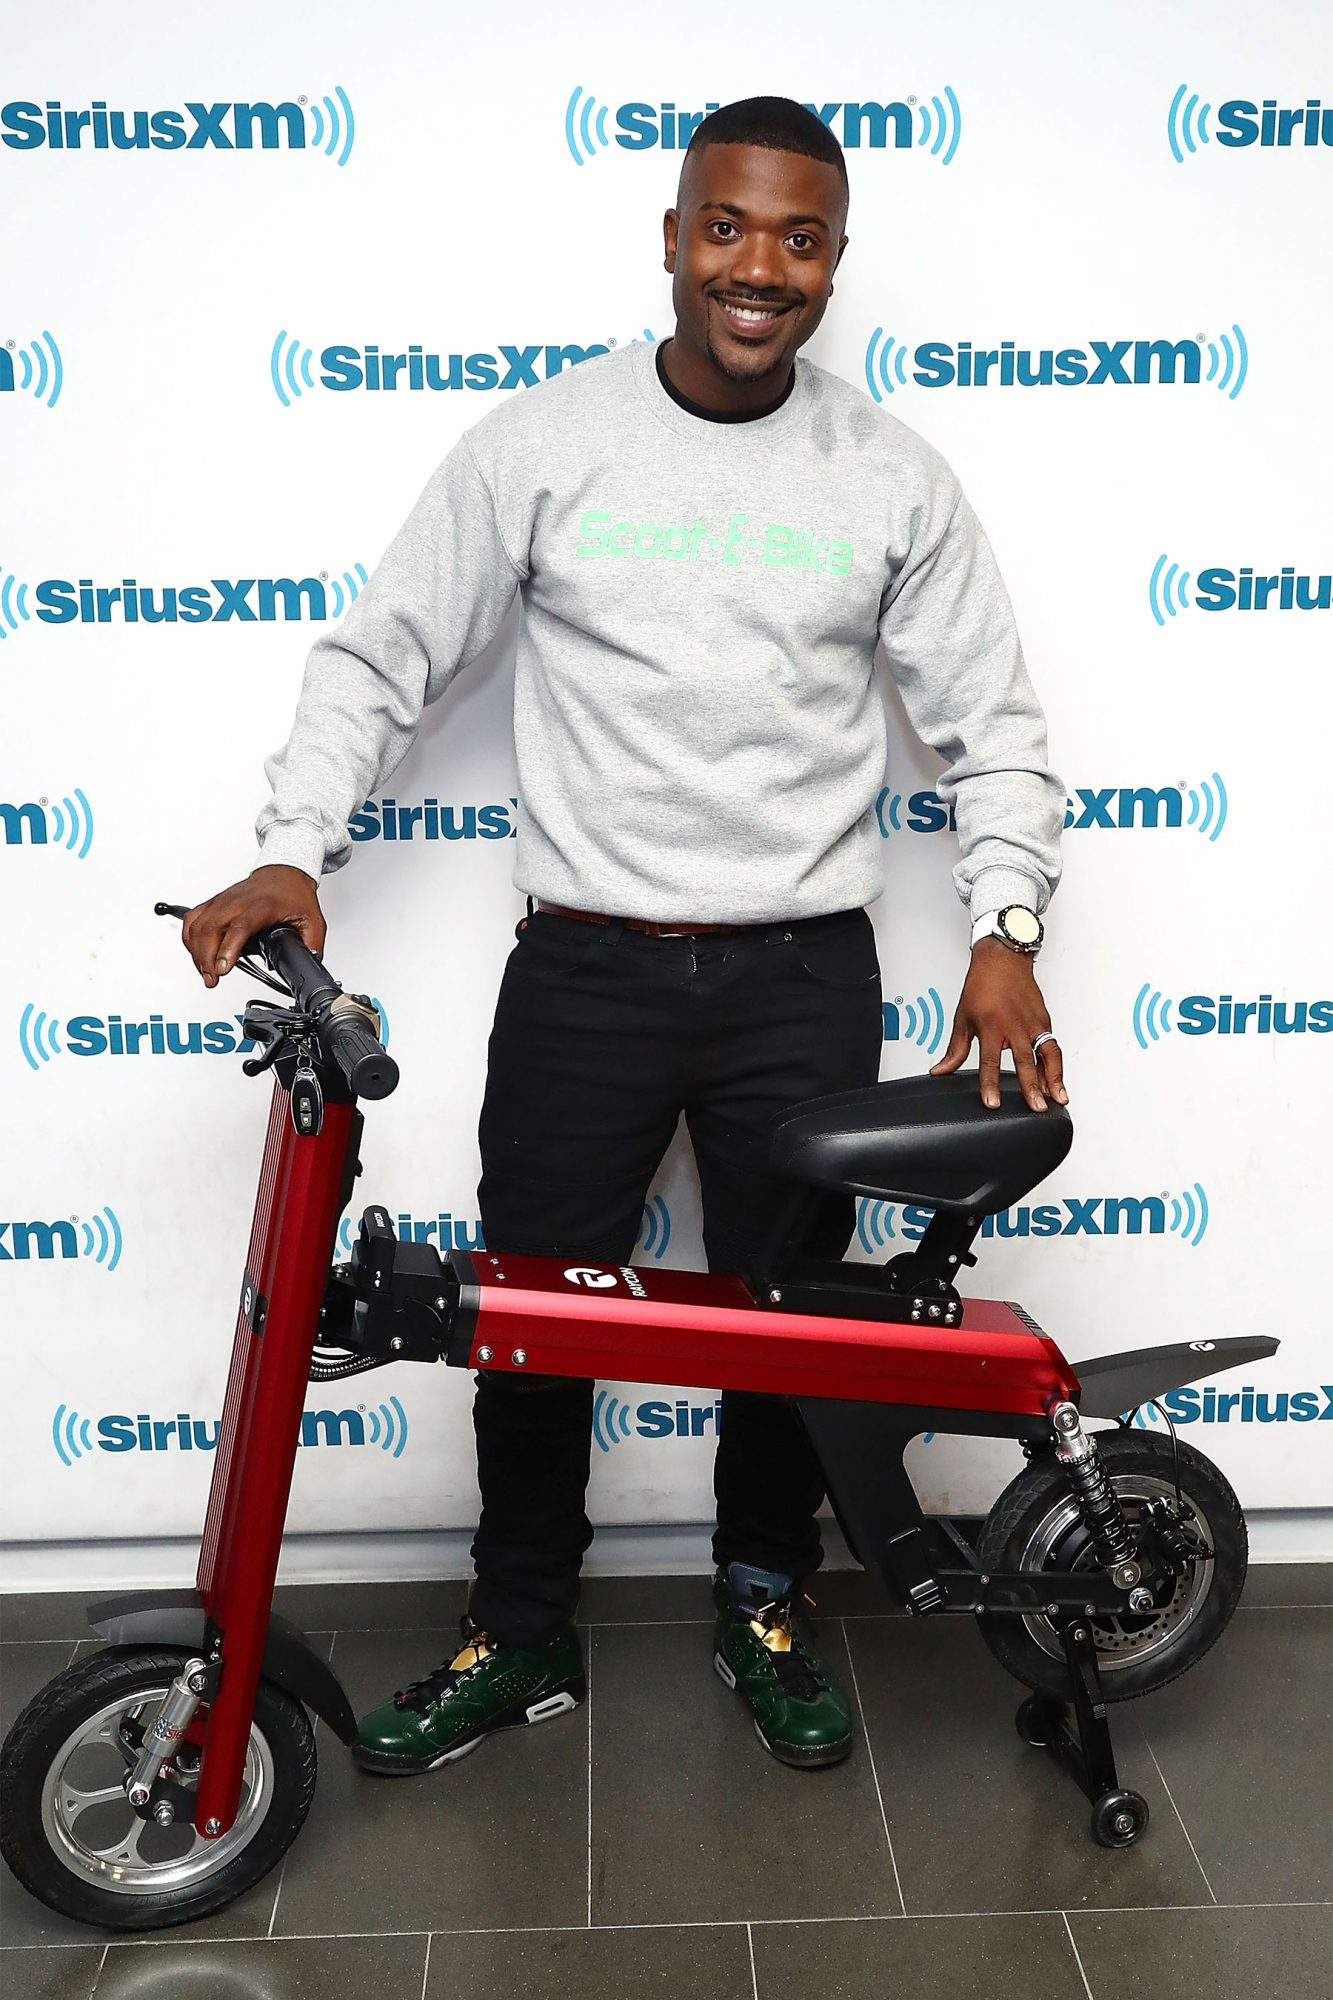 Celebrities Visit SiriusXM - March 29, 2018